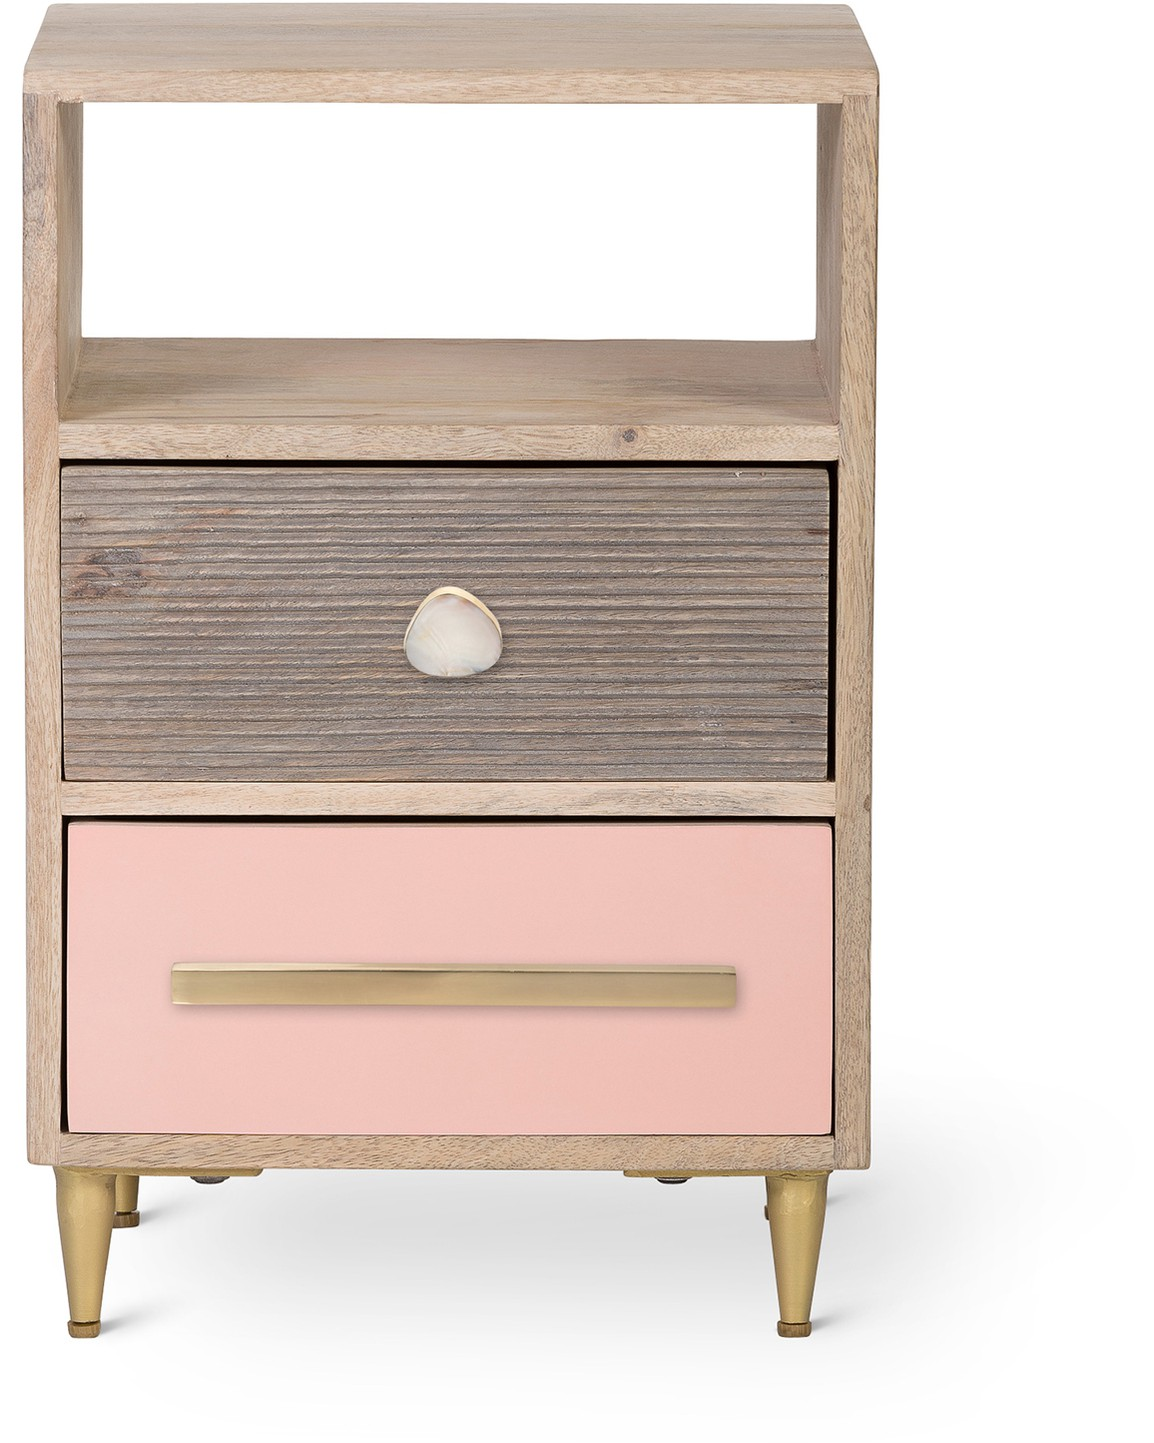 chests cabinets oliver bonas rh oliverbonas com Decorative Chests and Cabinets Accent Cabinets with Drawers